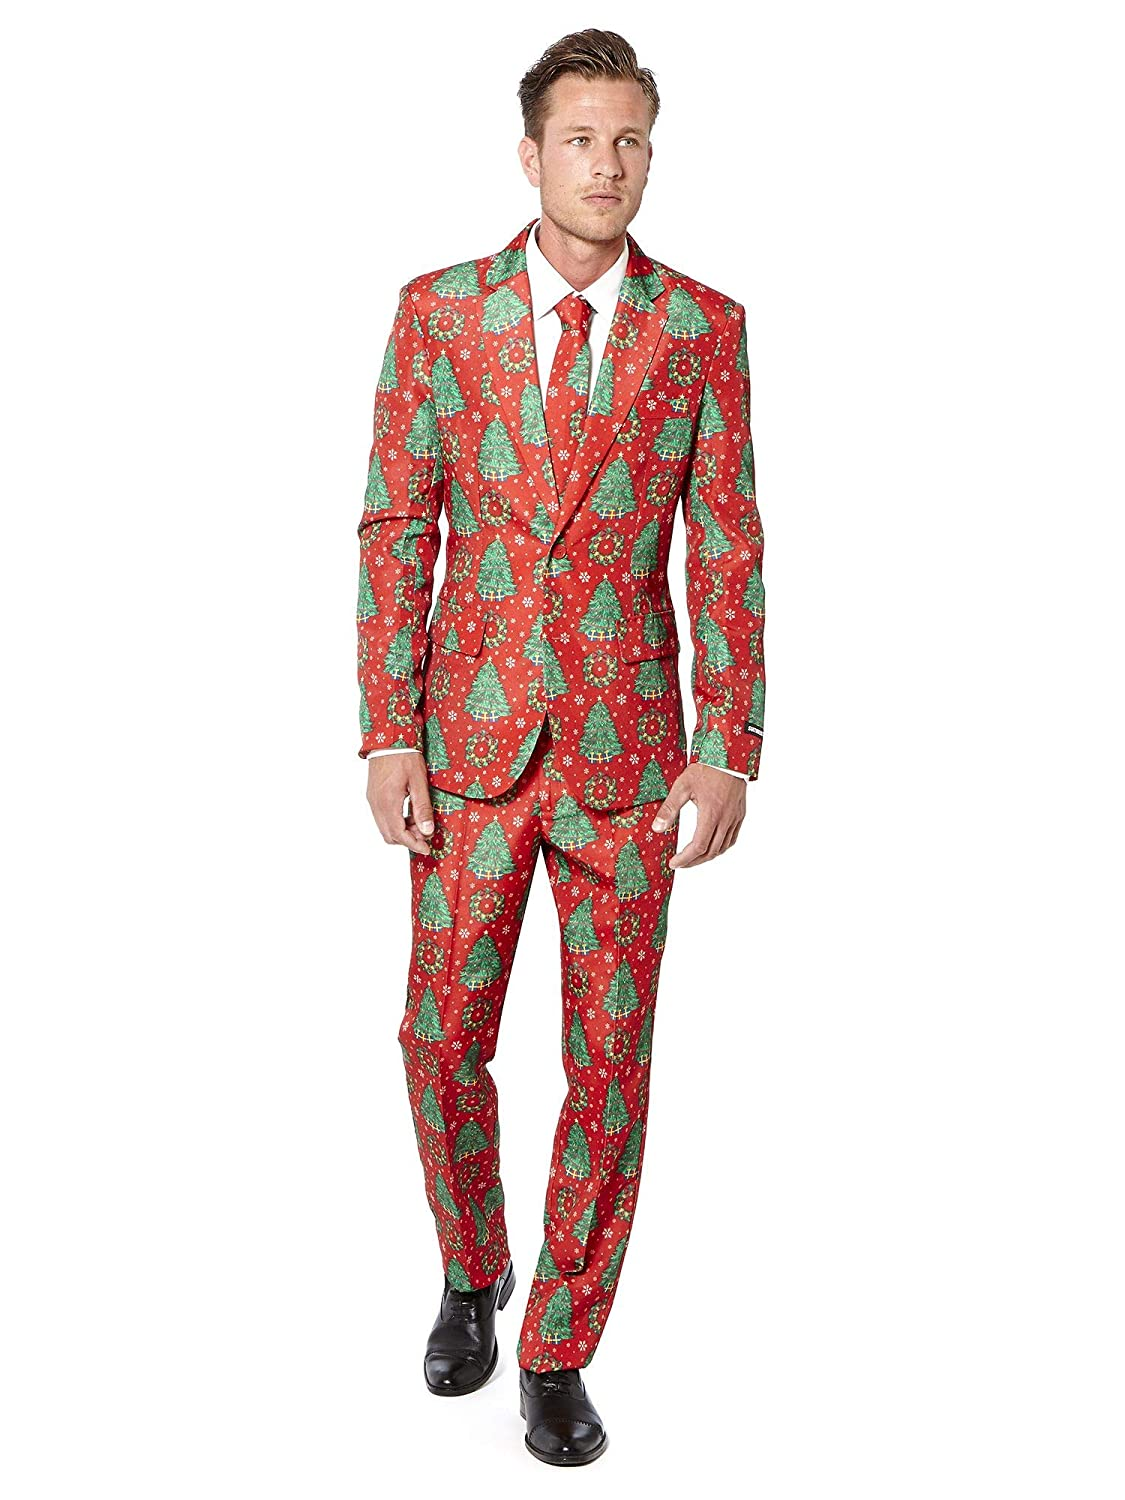 Ugly Xmas Sweater Costumes Include Jacket Pants /& Tie Suitmeister Christmas Suits for Men in Different Prints